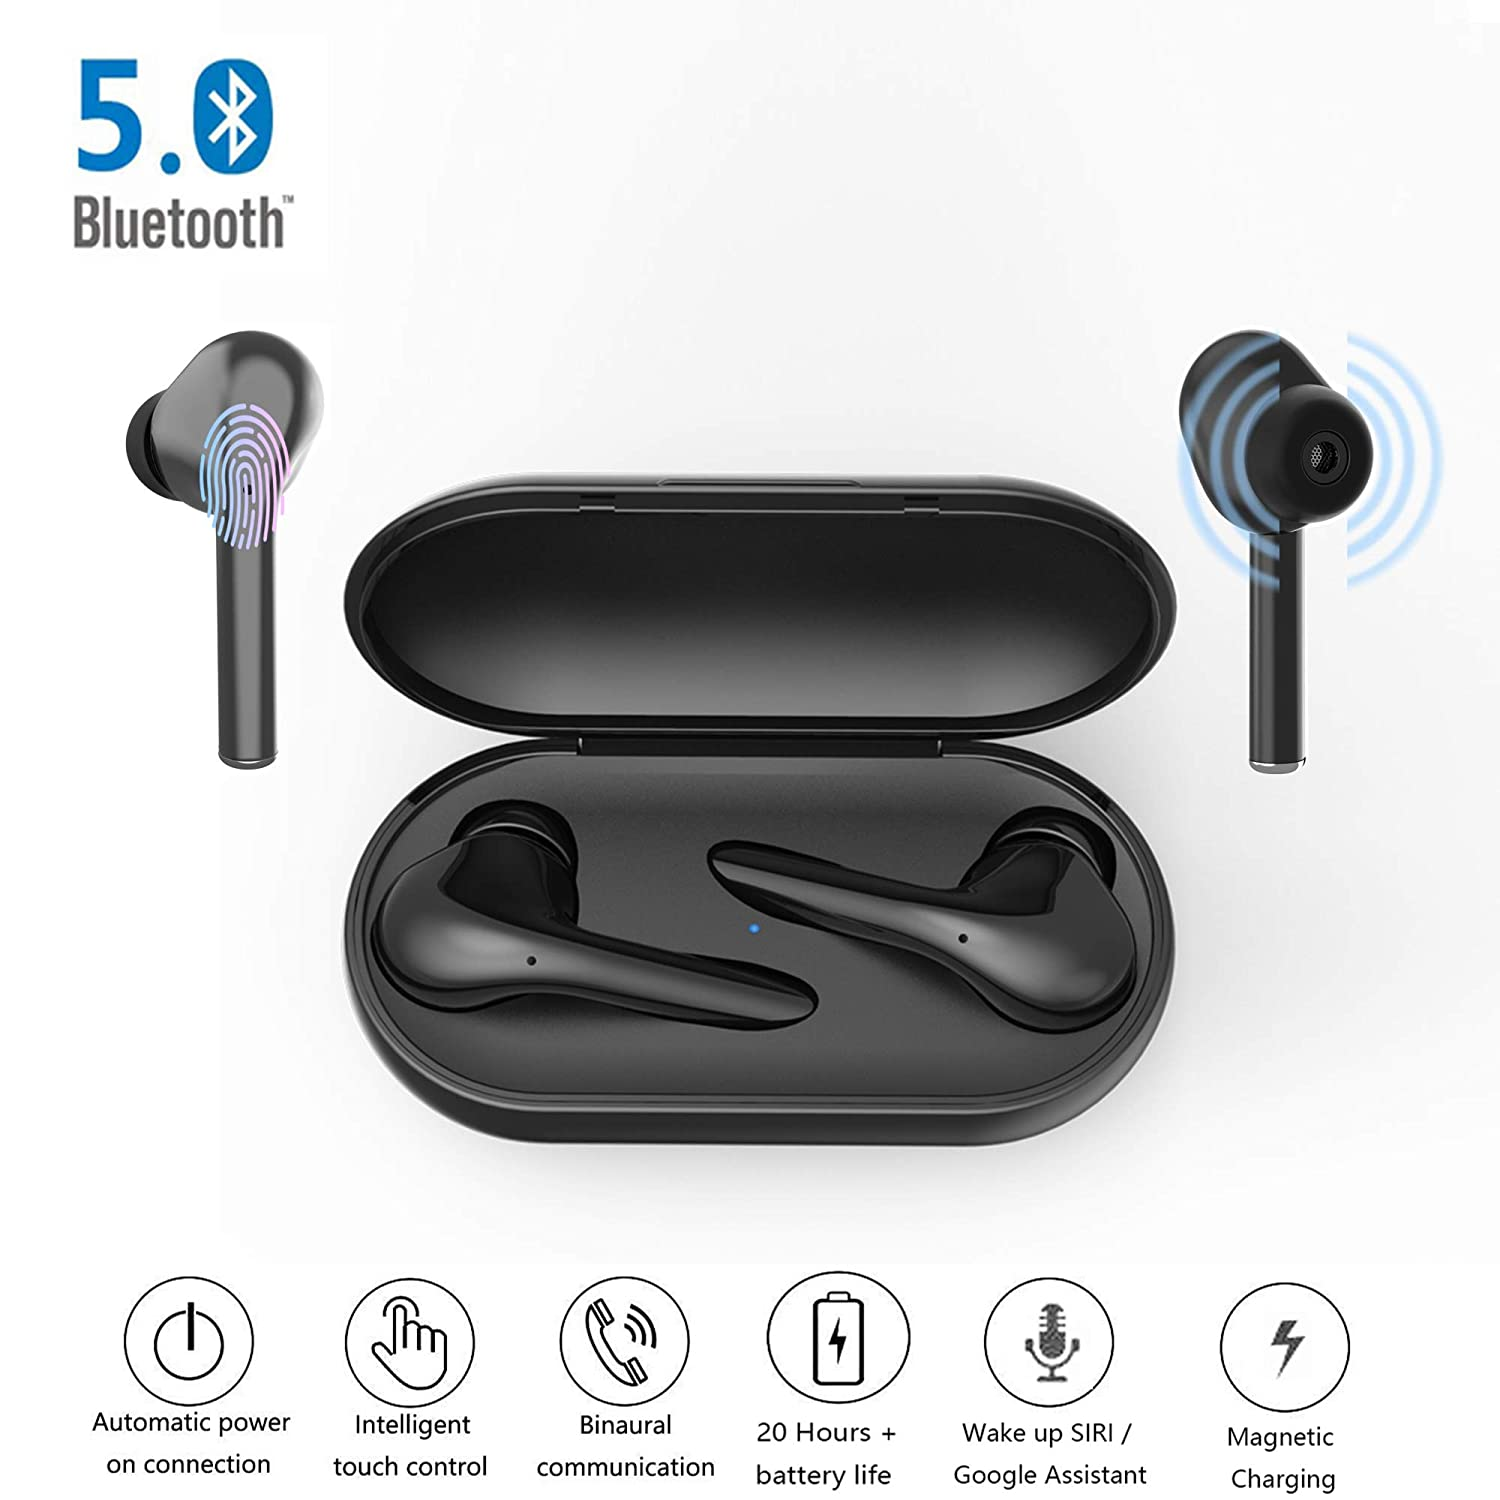 Bluetooth Headphones 5.0, Wireless Earphones 3D Stereo, in-Ear Earbuds, Handsfree Sport Headphones with Microphone and Portable Charging Case for All Smartphone Tablet